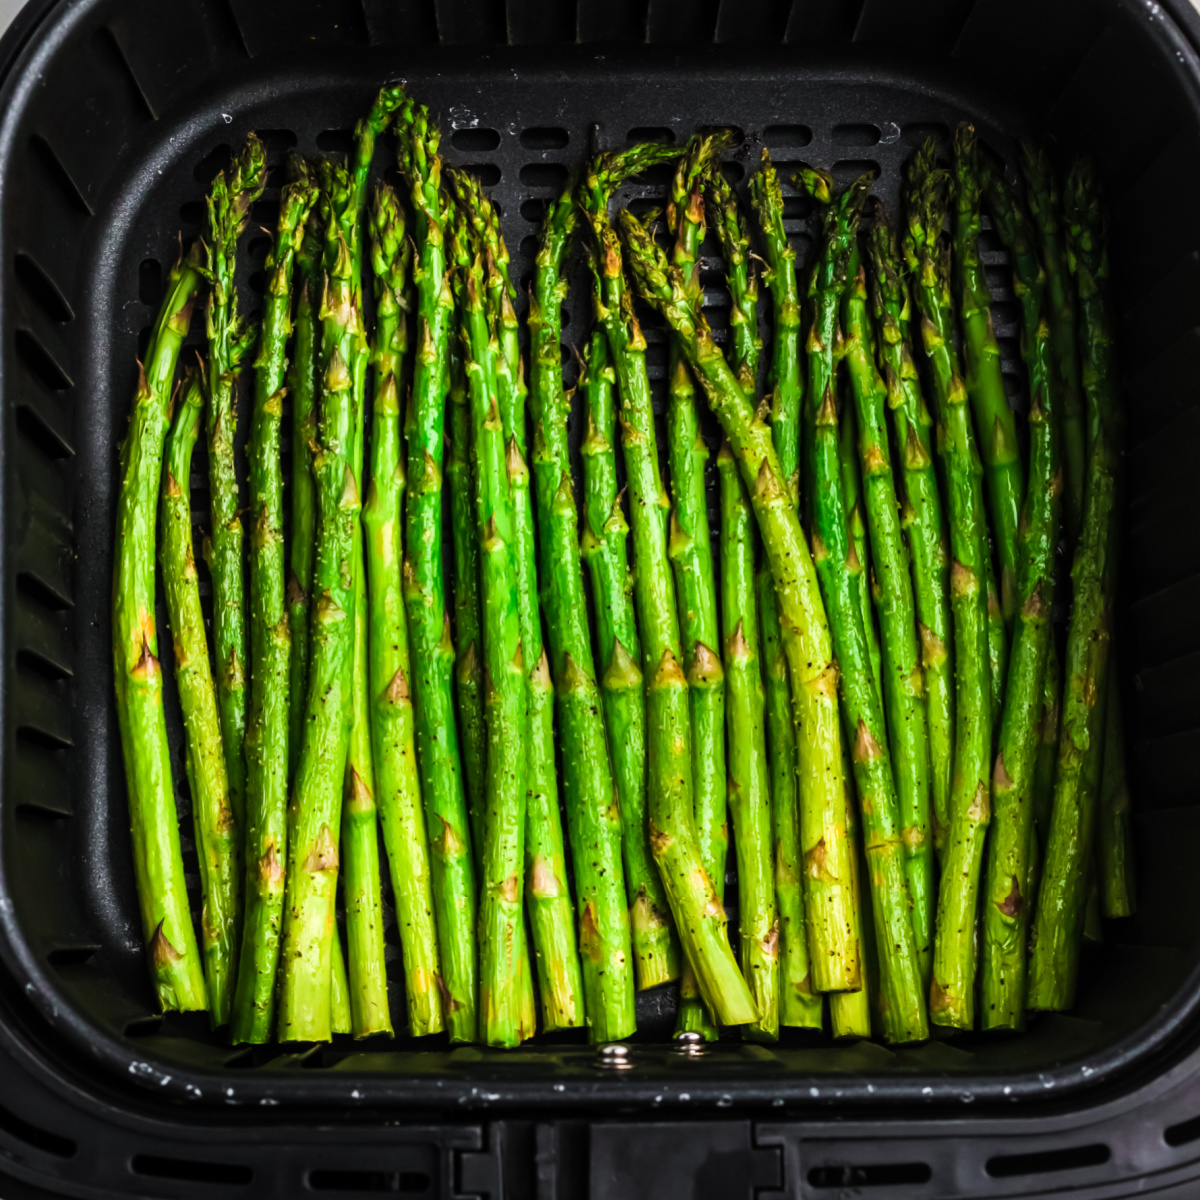 Air fried asparagus in the basket of the air fryer.